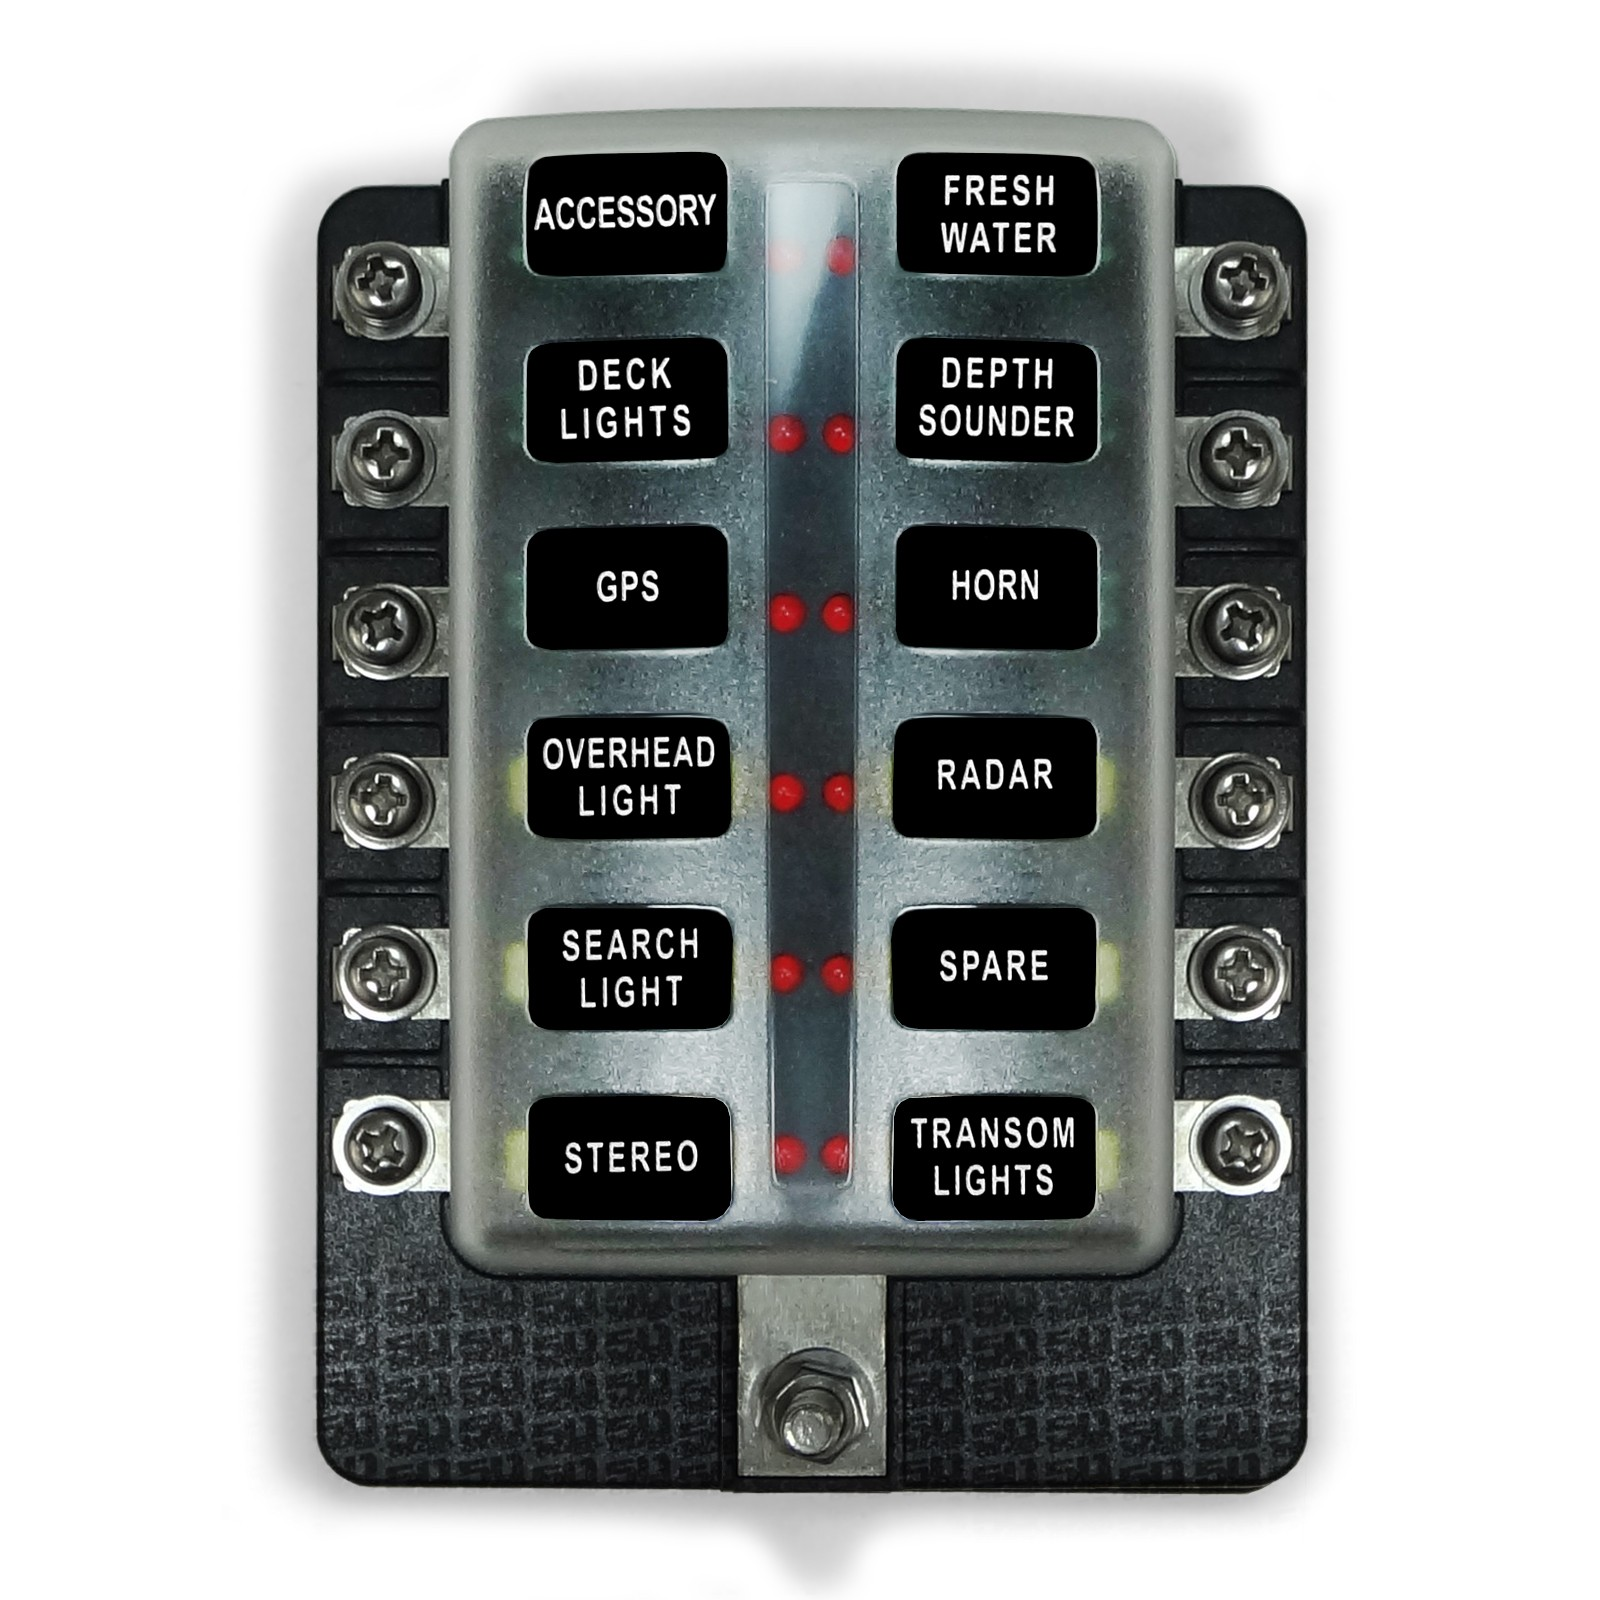 12v 12 piece fuse block power block for wiring your vehicle ... Main Power Switch Fuse Box on fuse adapters, fuse cover, fuse tool, relay box, contactor box, circuit breaker box,